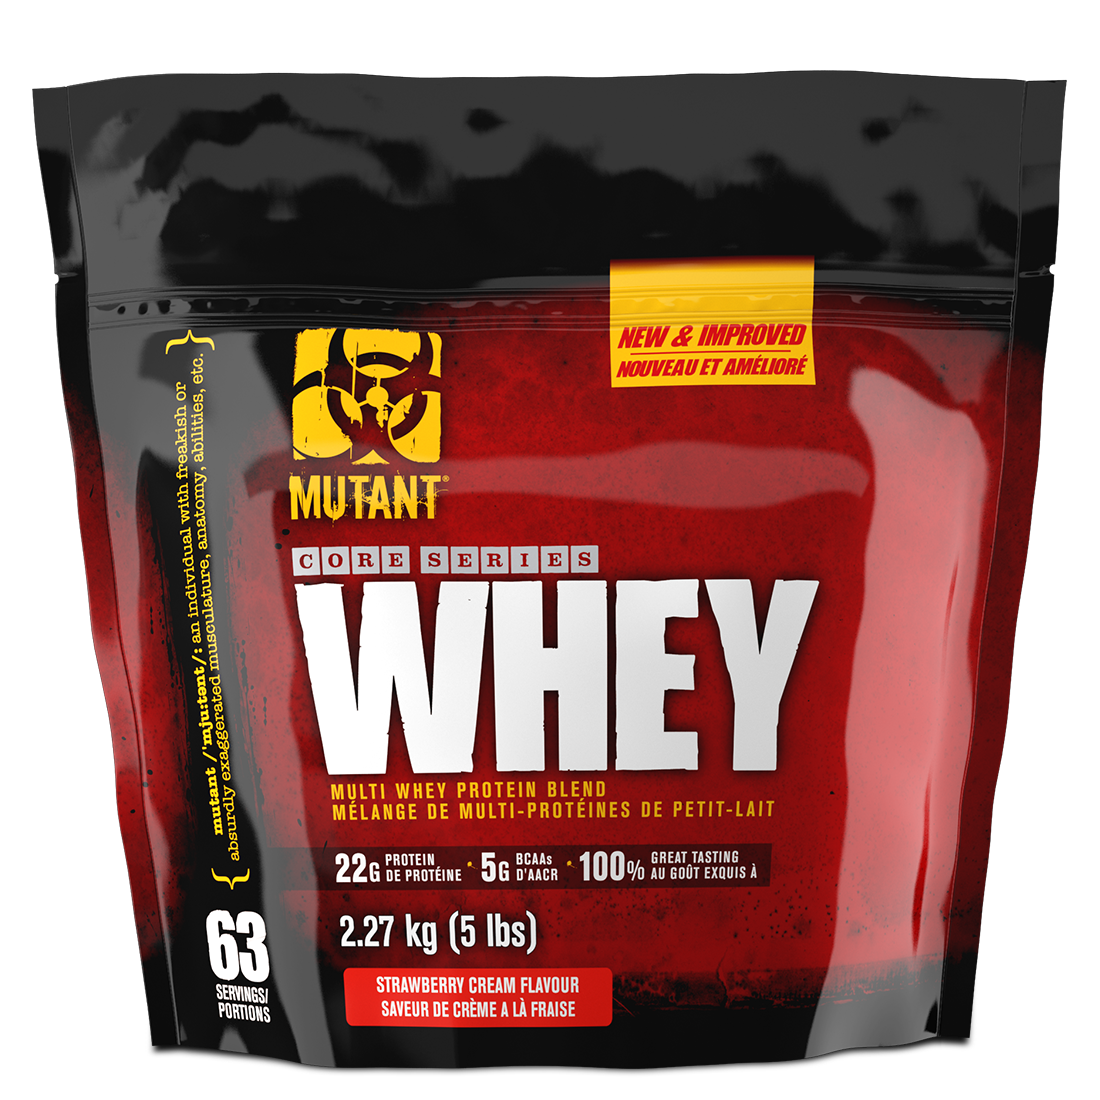 Multi whey protein blend